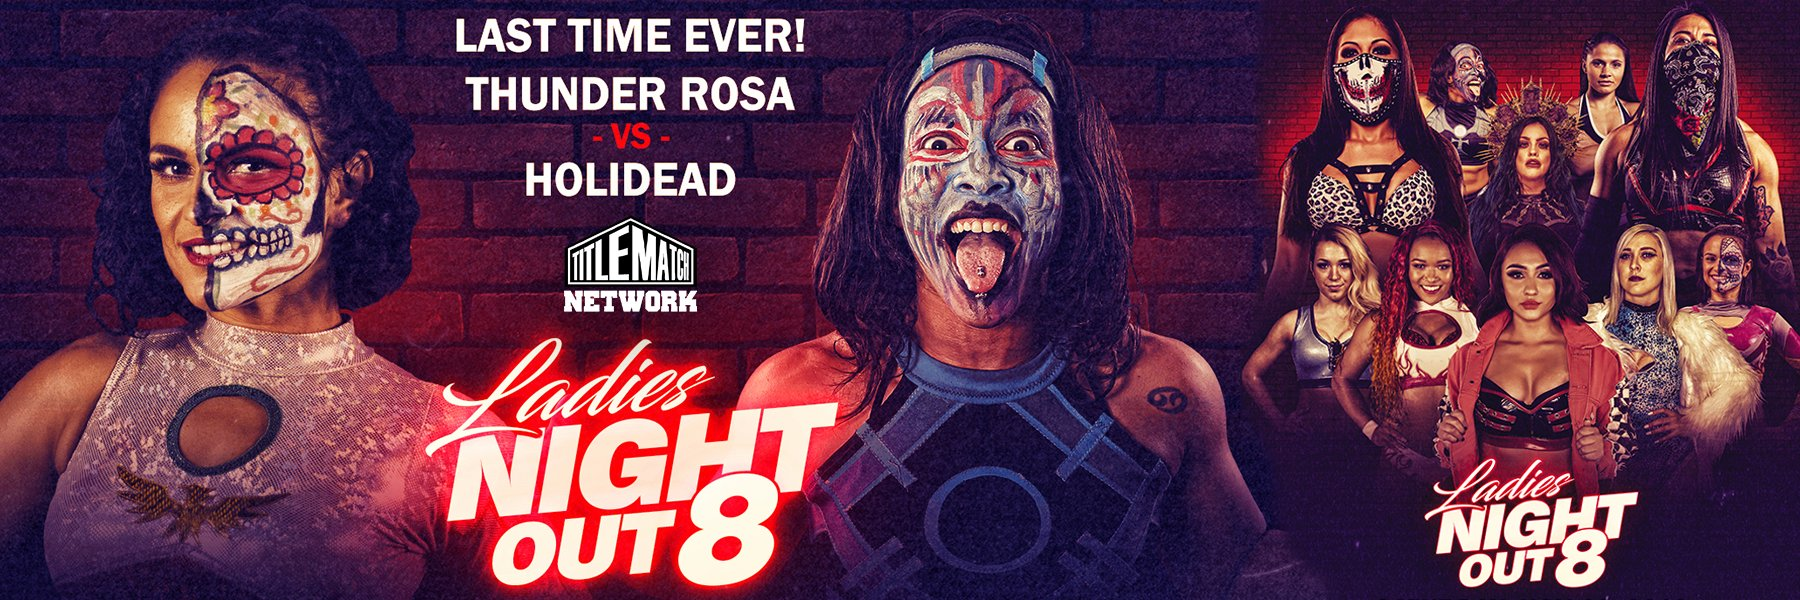 Ladies Night Out 8 Livestream 11/16 (Thunder Rosa vs Holidead, Ivelisse)